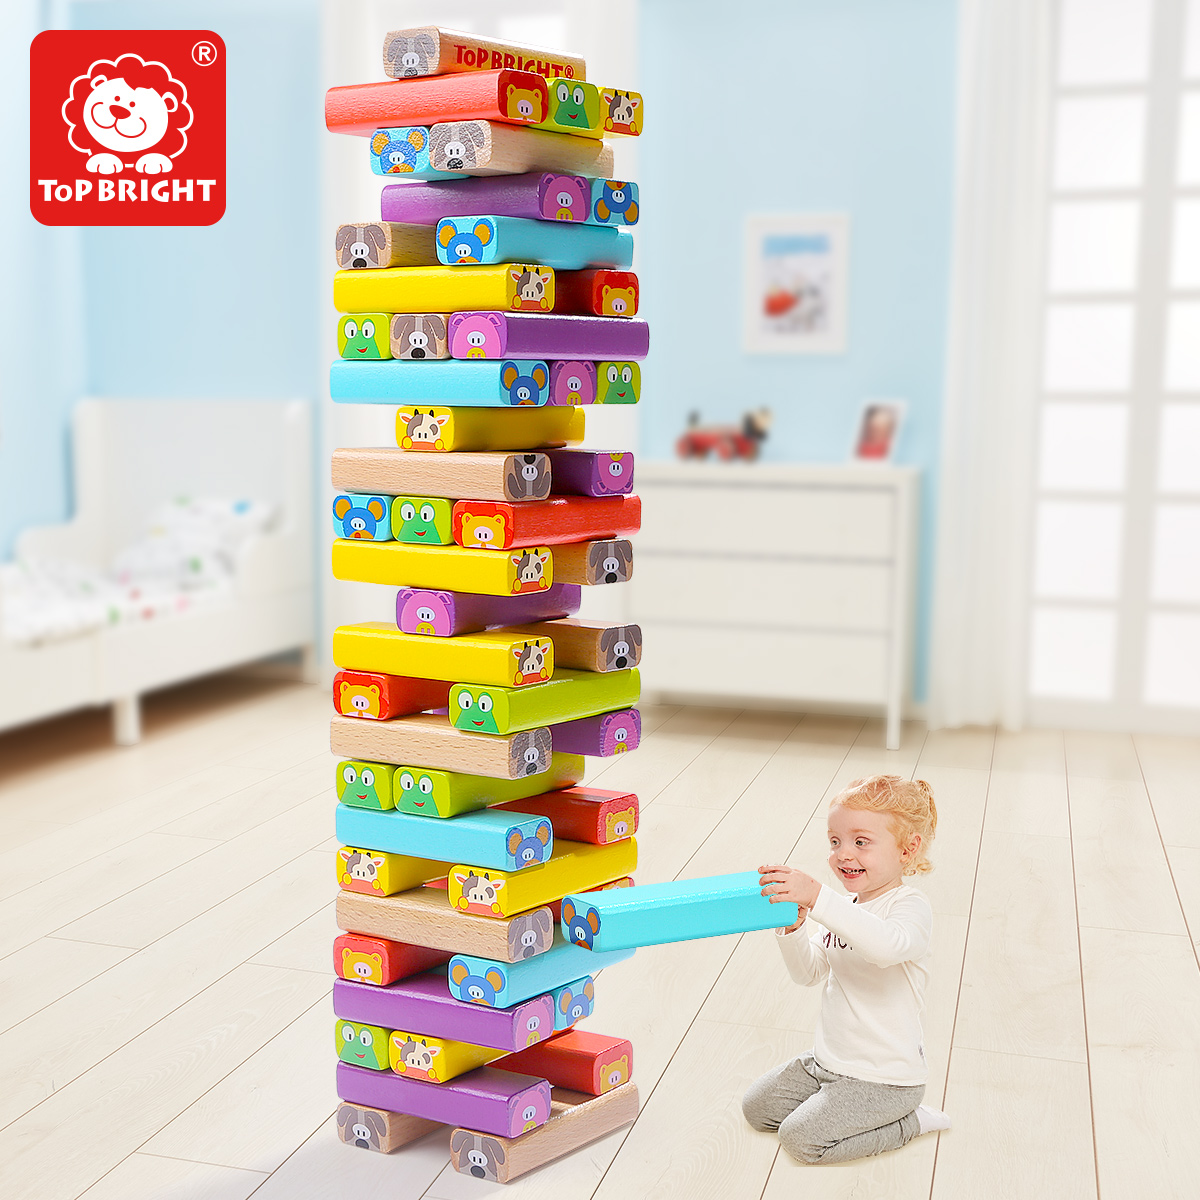 toy story games,wholesale toys,jenga game